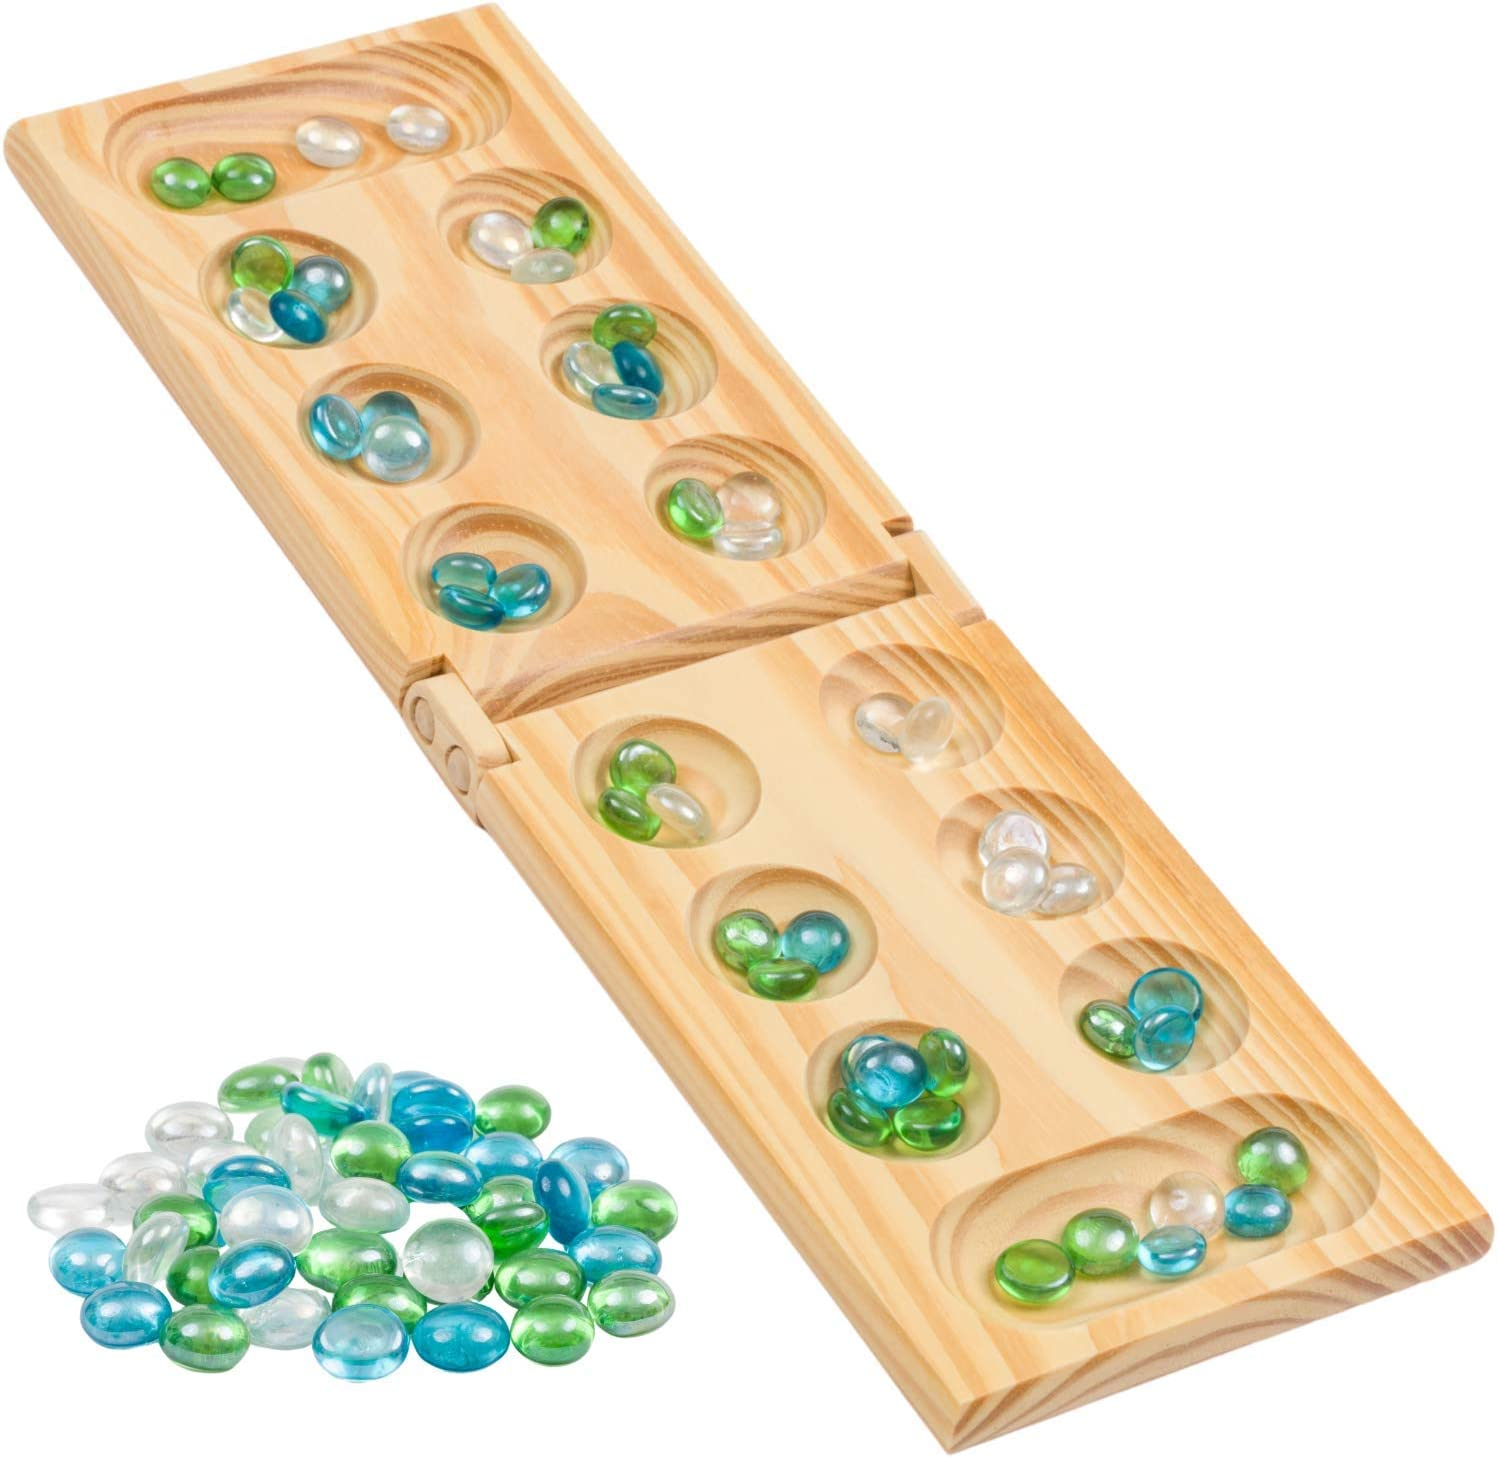 Regal Games Foldable Wooden Mancala Board Game with 48 Glass Stones, for Ages 8 to Adult